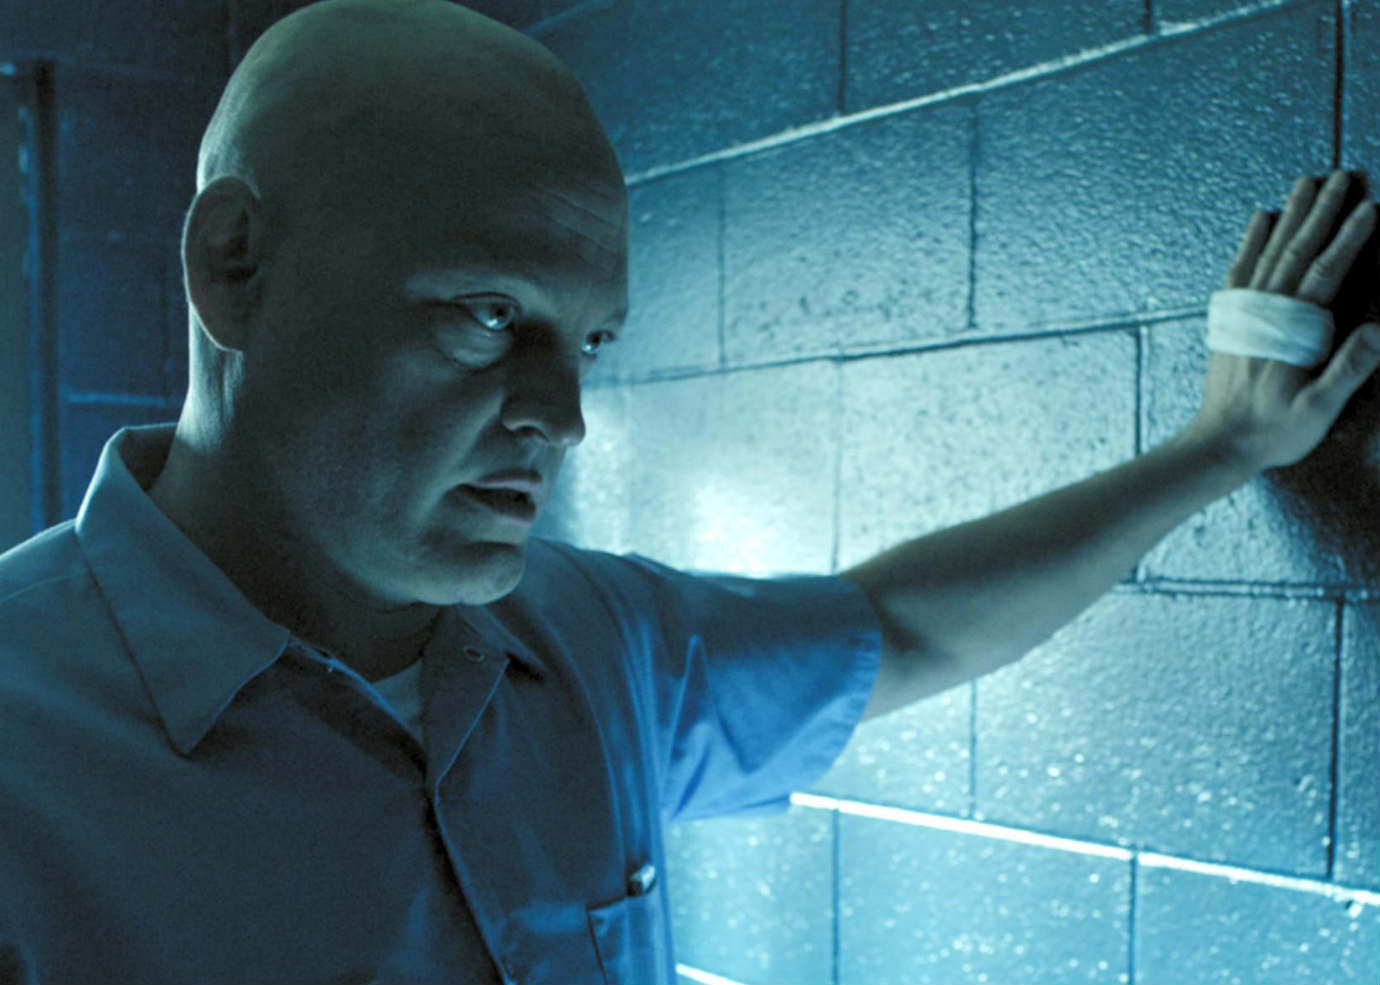 Vince Vaughn Looks Ready to Fight in Brawl in Cell Block 99 Trailer